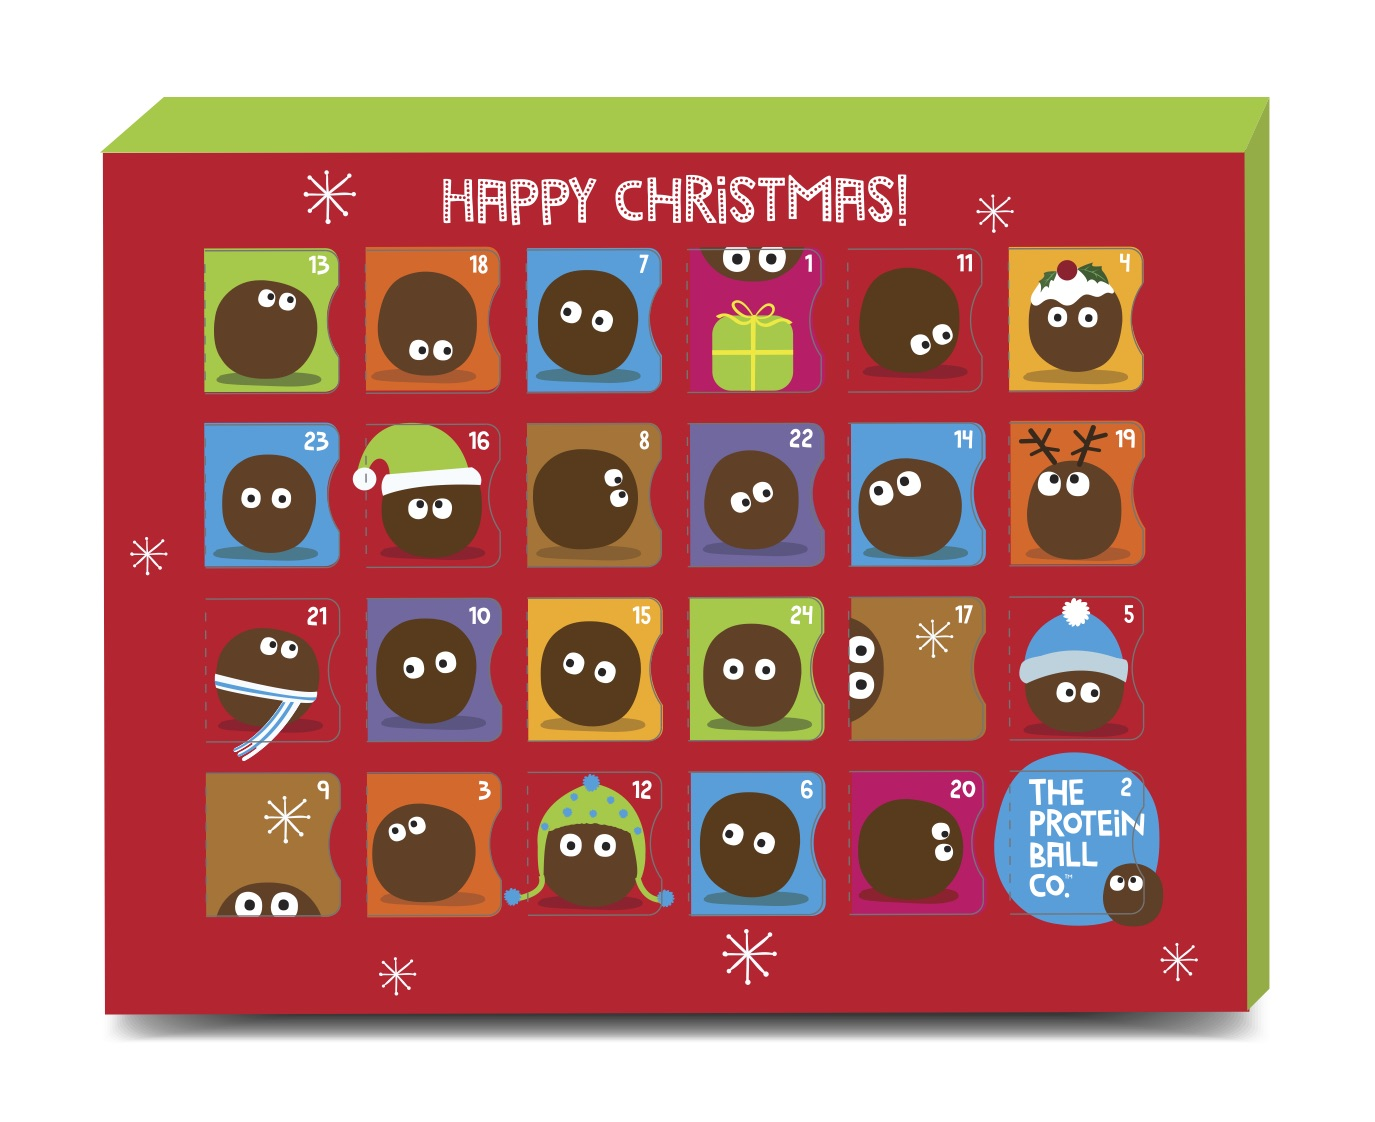 The Protein Ball Co Advent Calendar